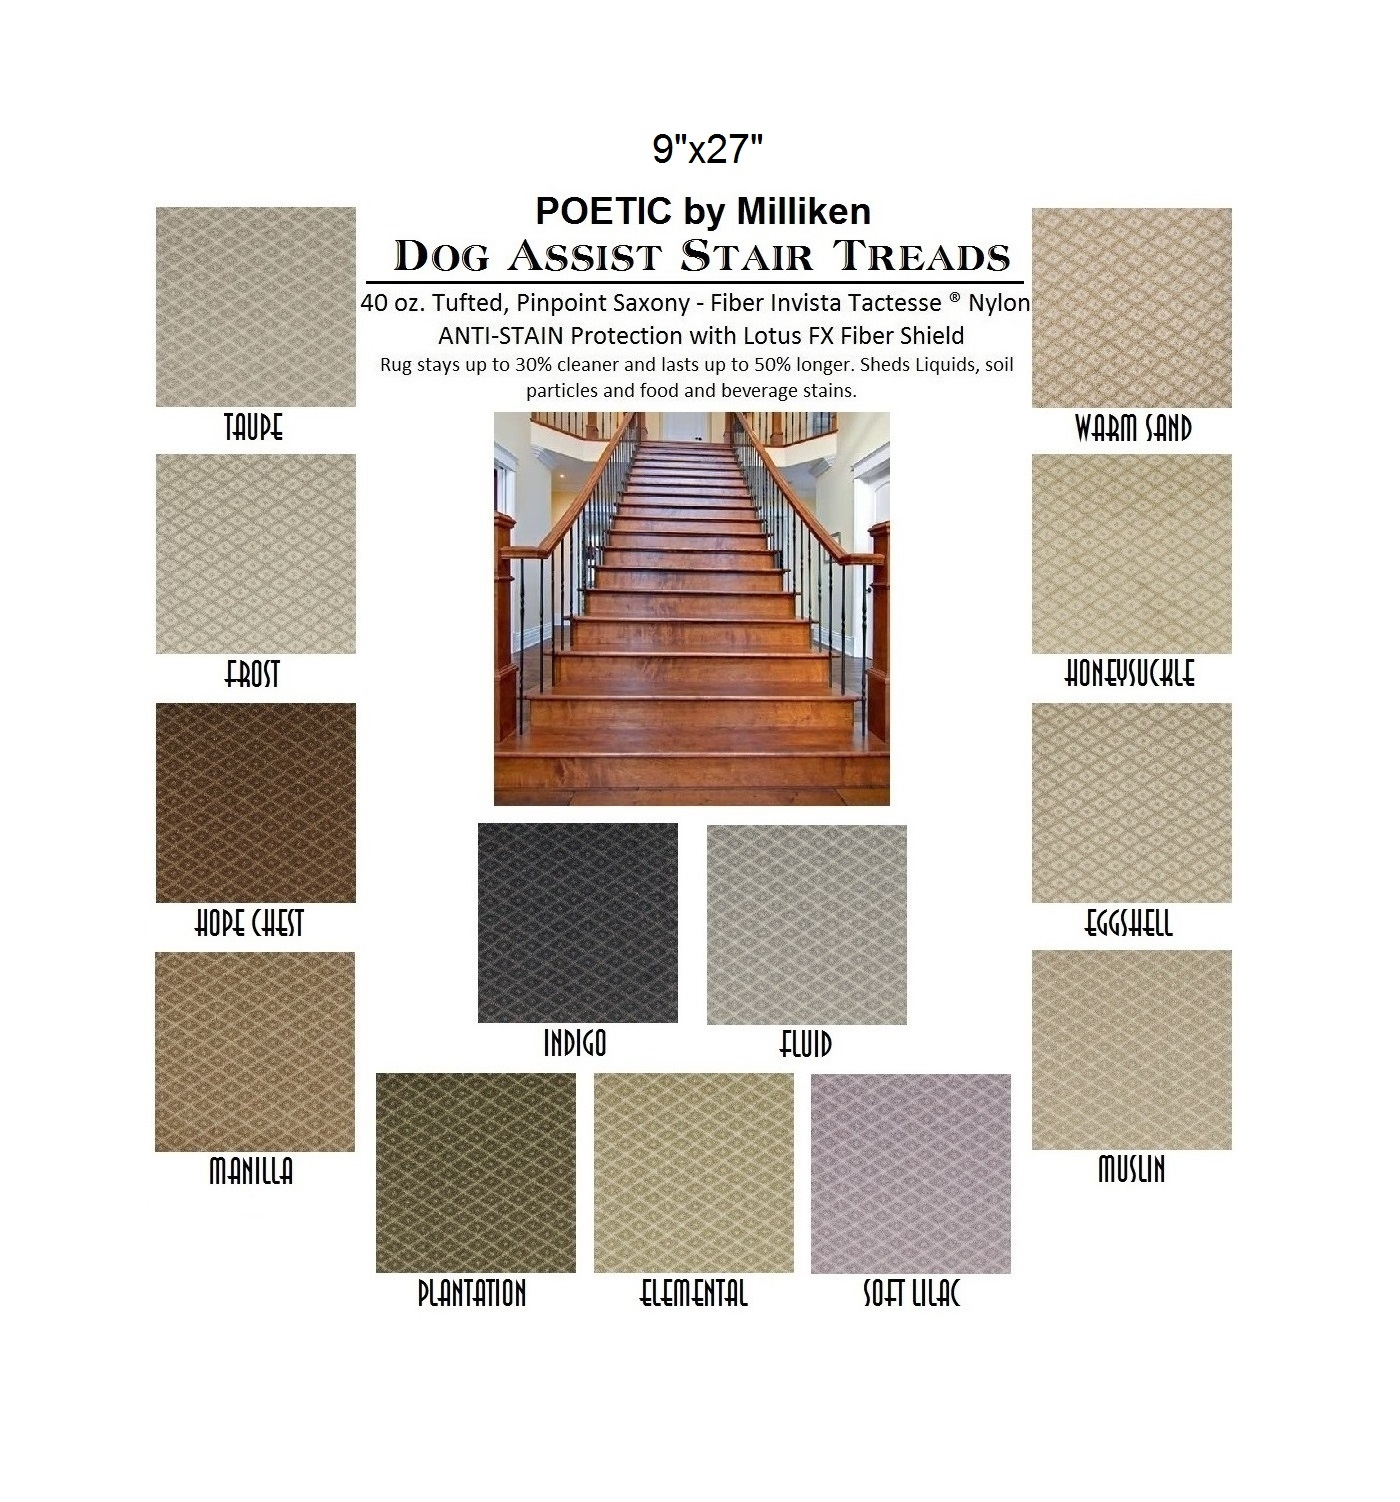 Ii Dog Assist Carpet Stair Treads In Stair Tread Rugs For Dogs (Image 12 of 15)